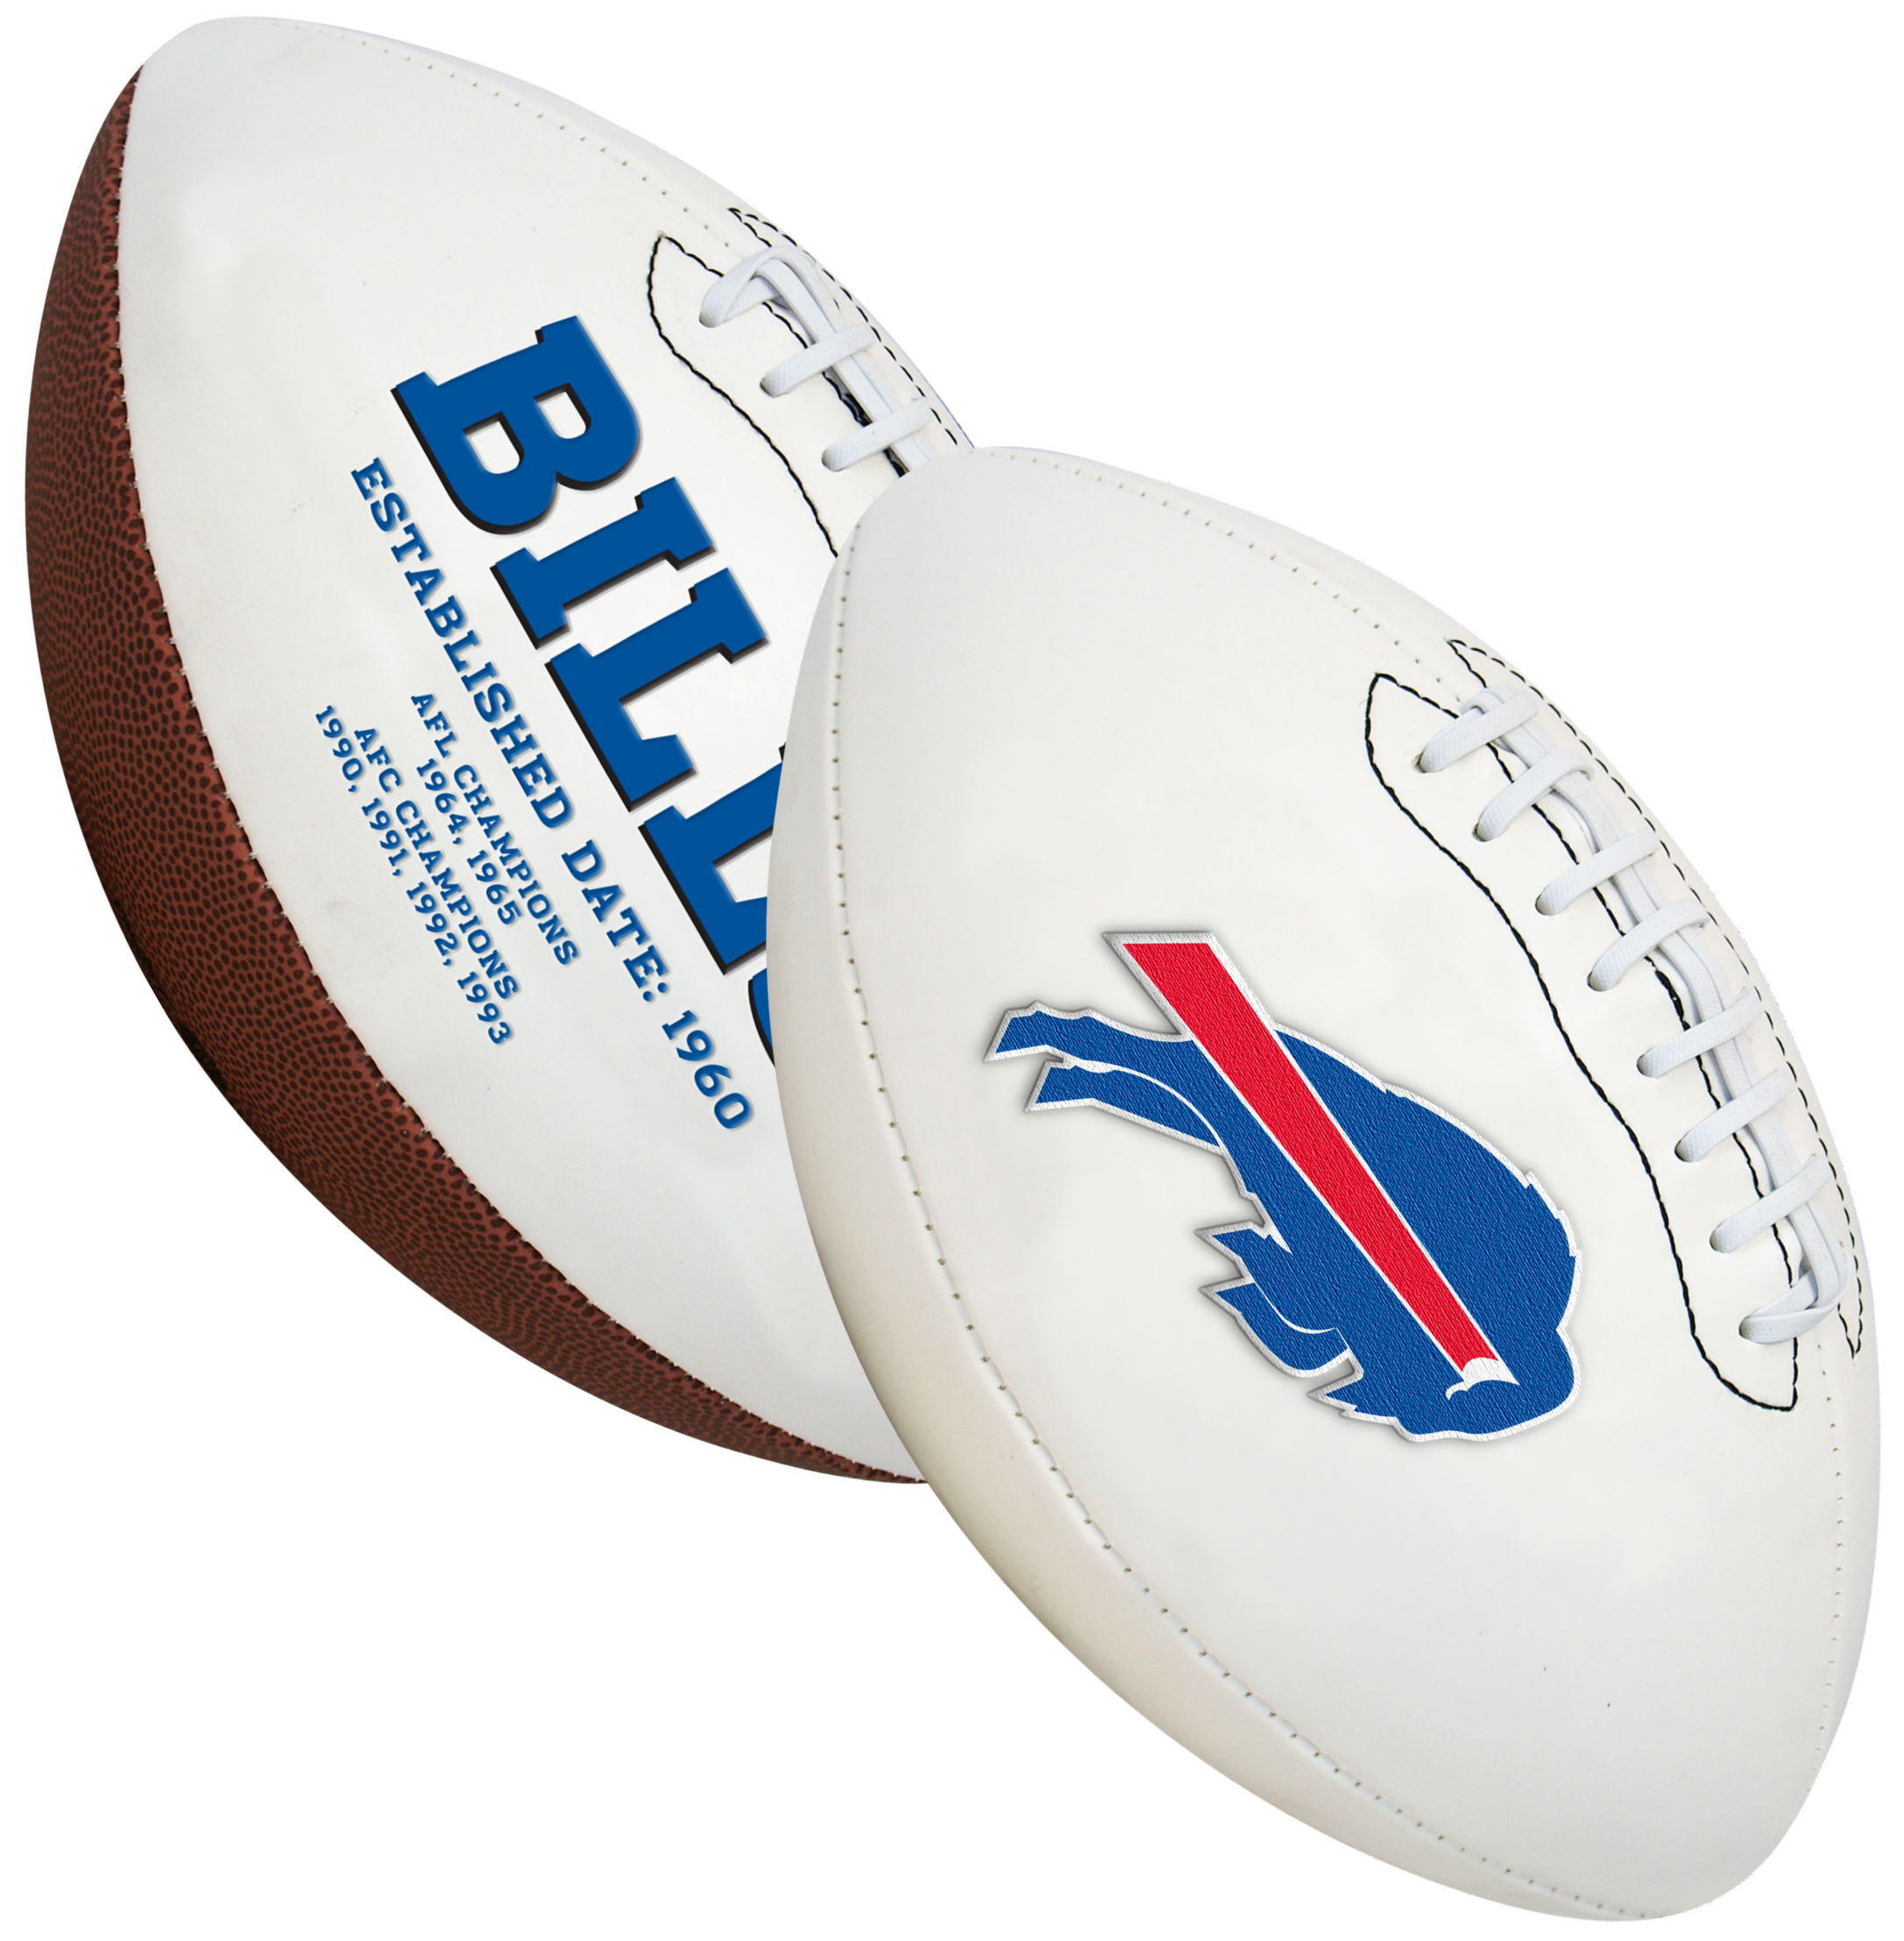 Buffalo Bills NFL Signature Series Full Size Football